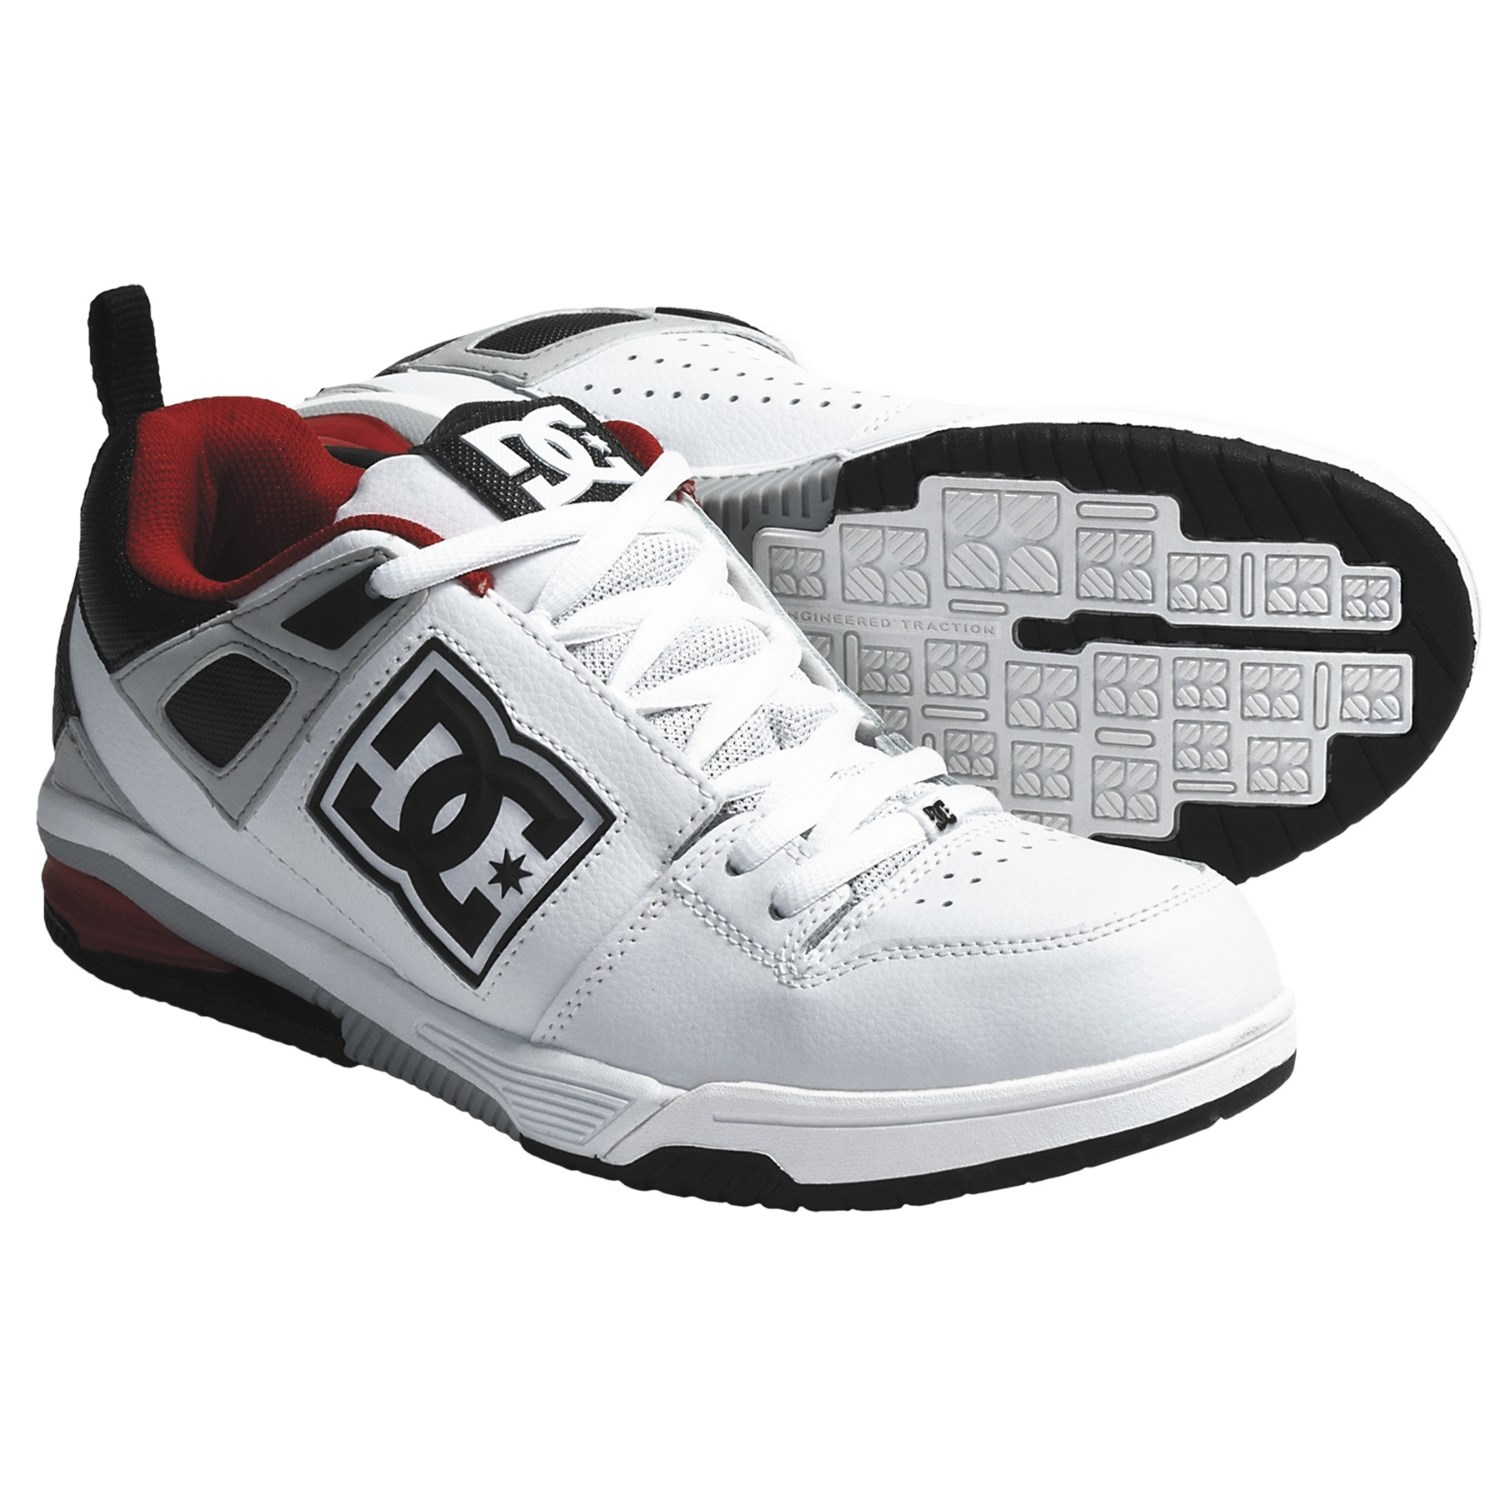 DC Shoes Impact RS Skate Shoes (For Men) in White/Black/Armor